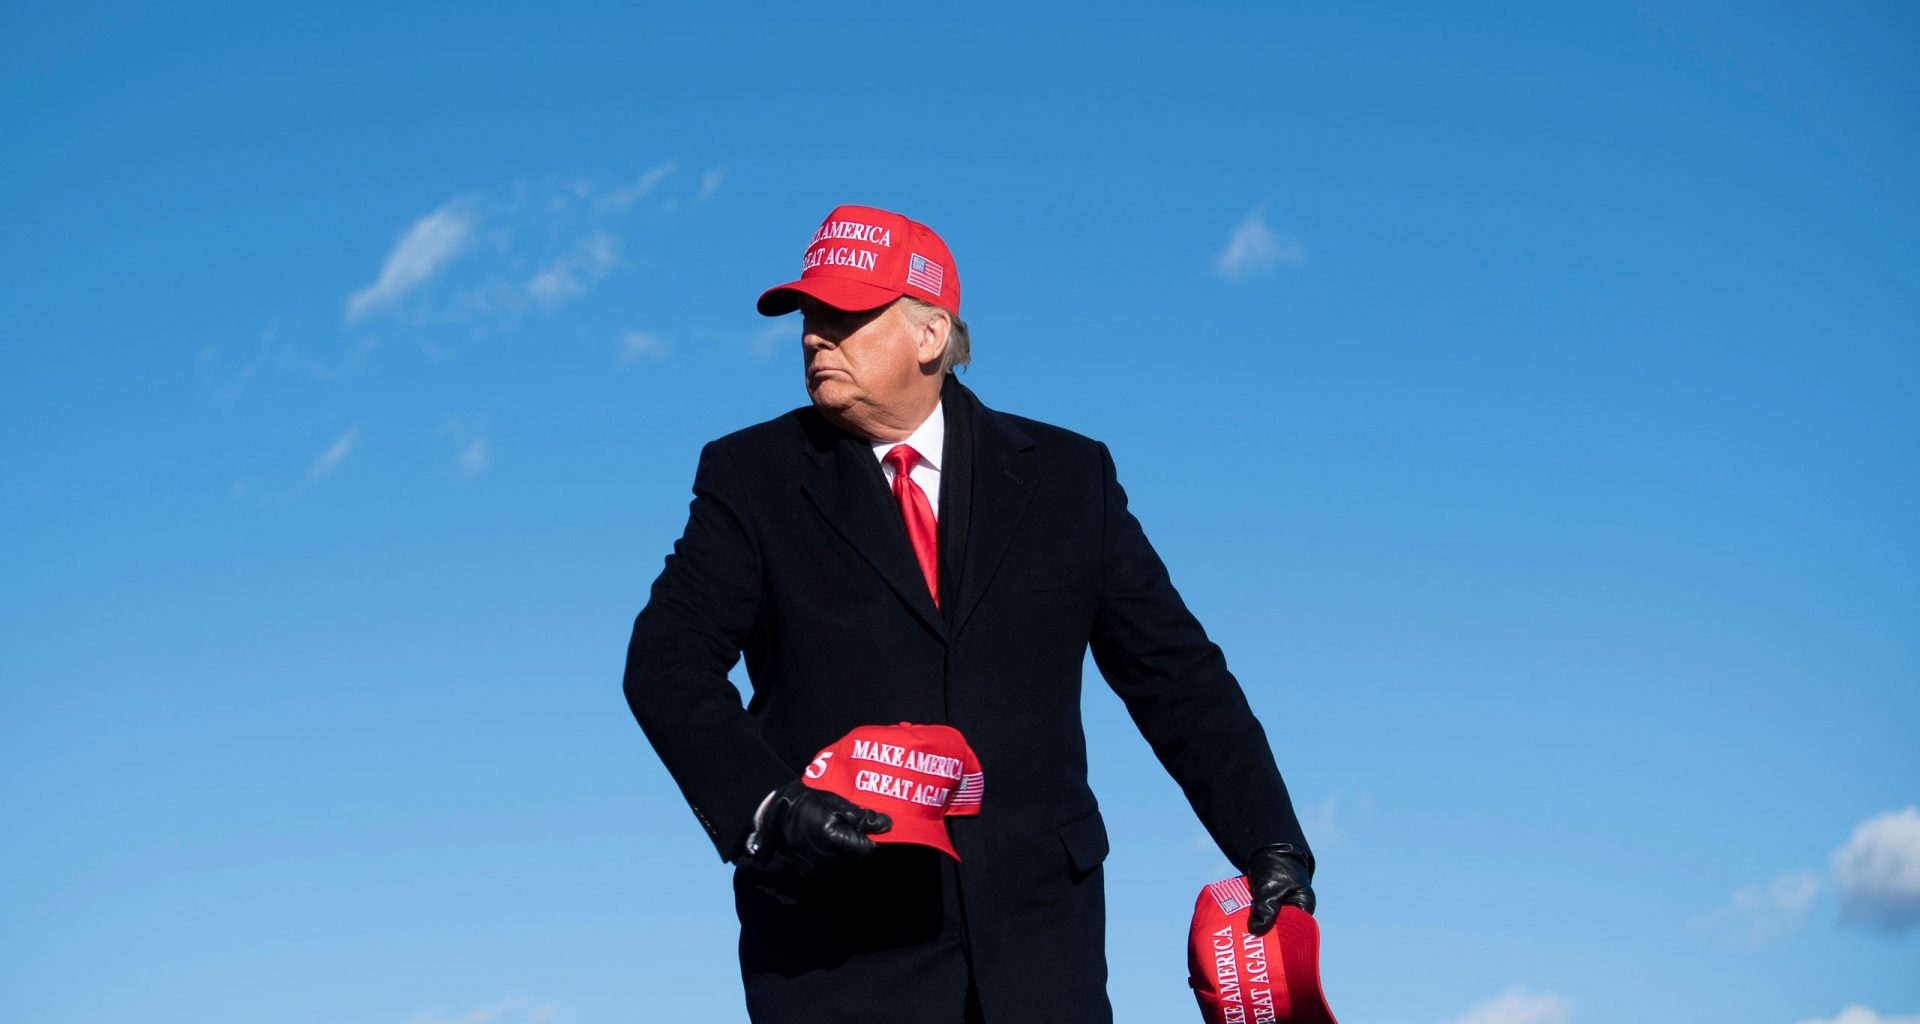 YES: Trump Vows to Take it Back